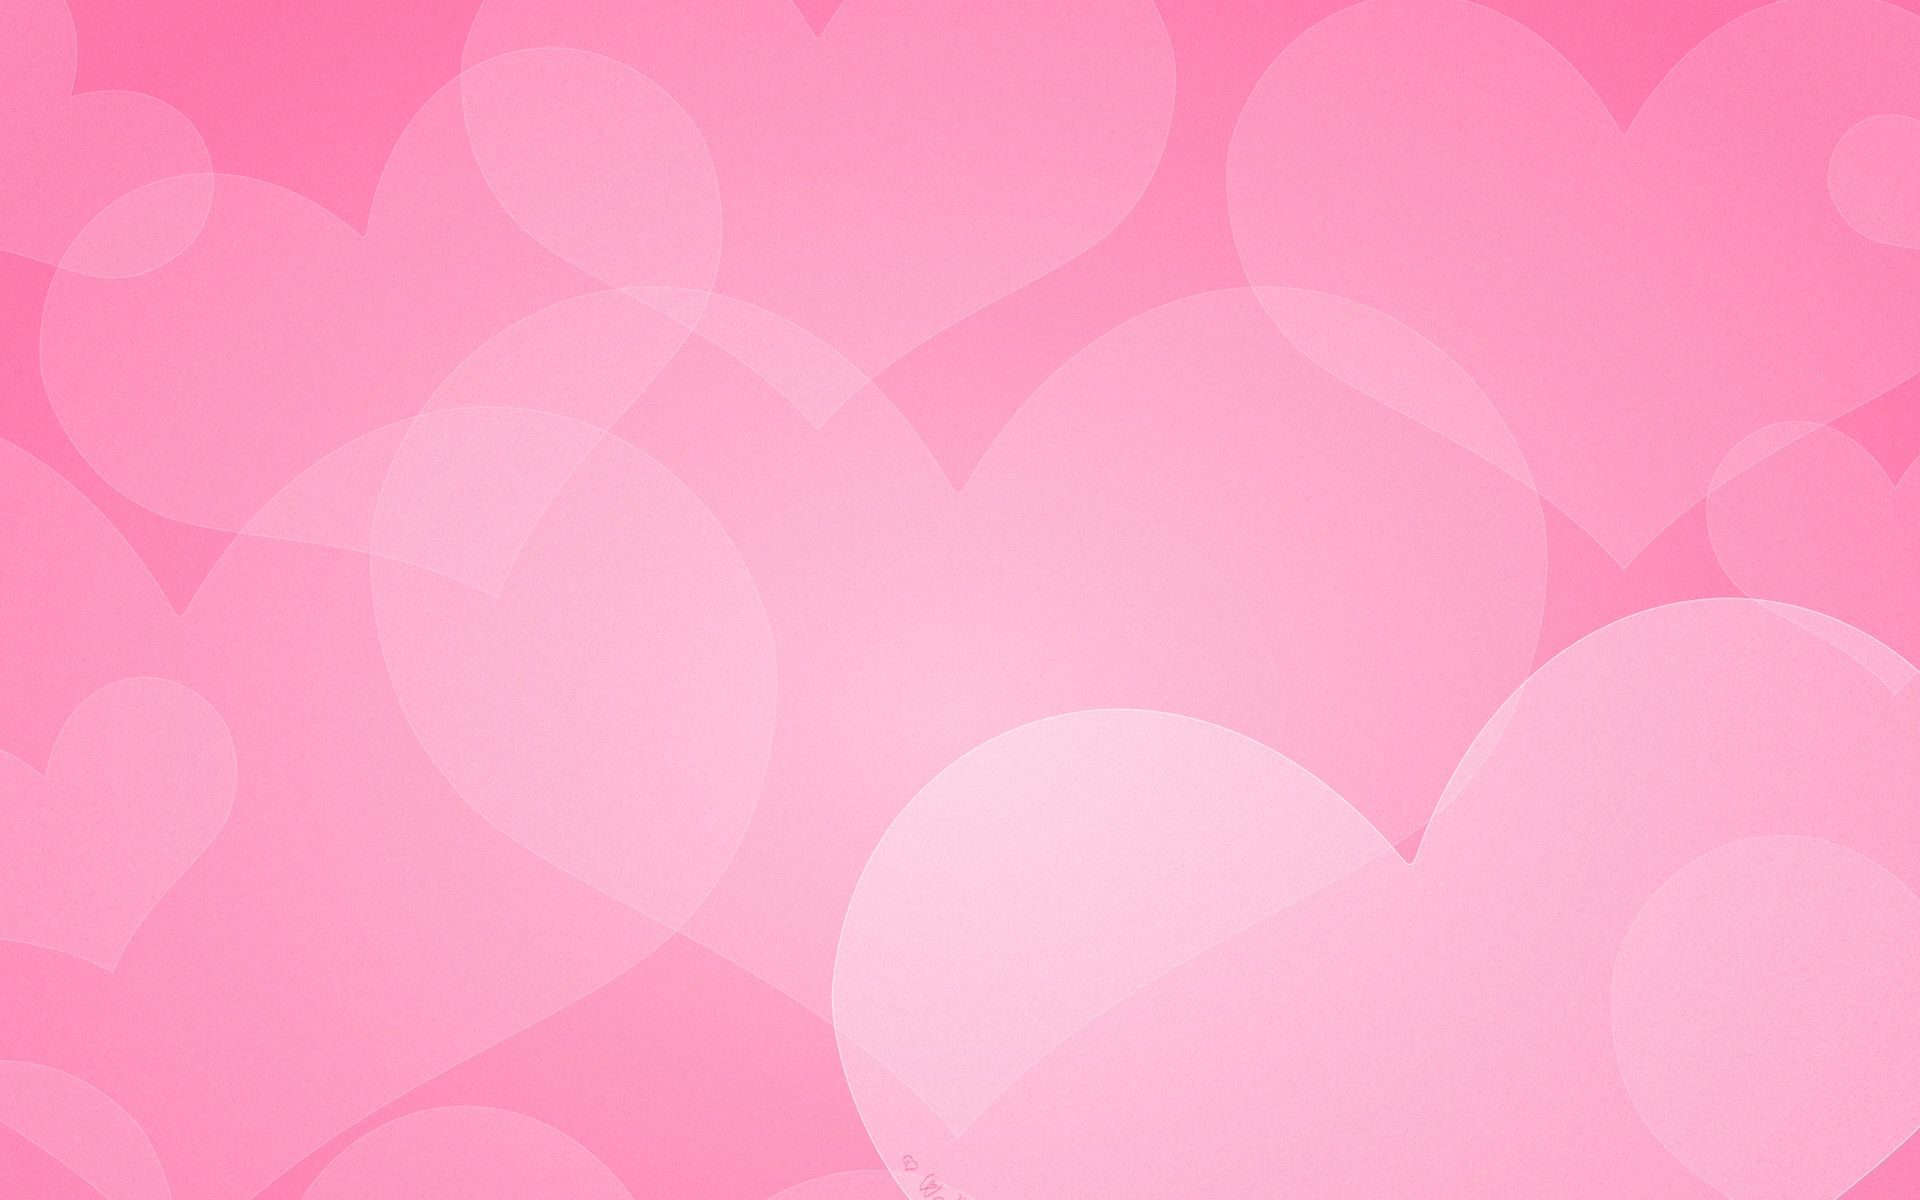 Wallpaper With Hearts